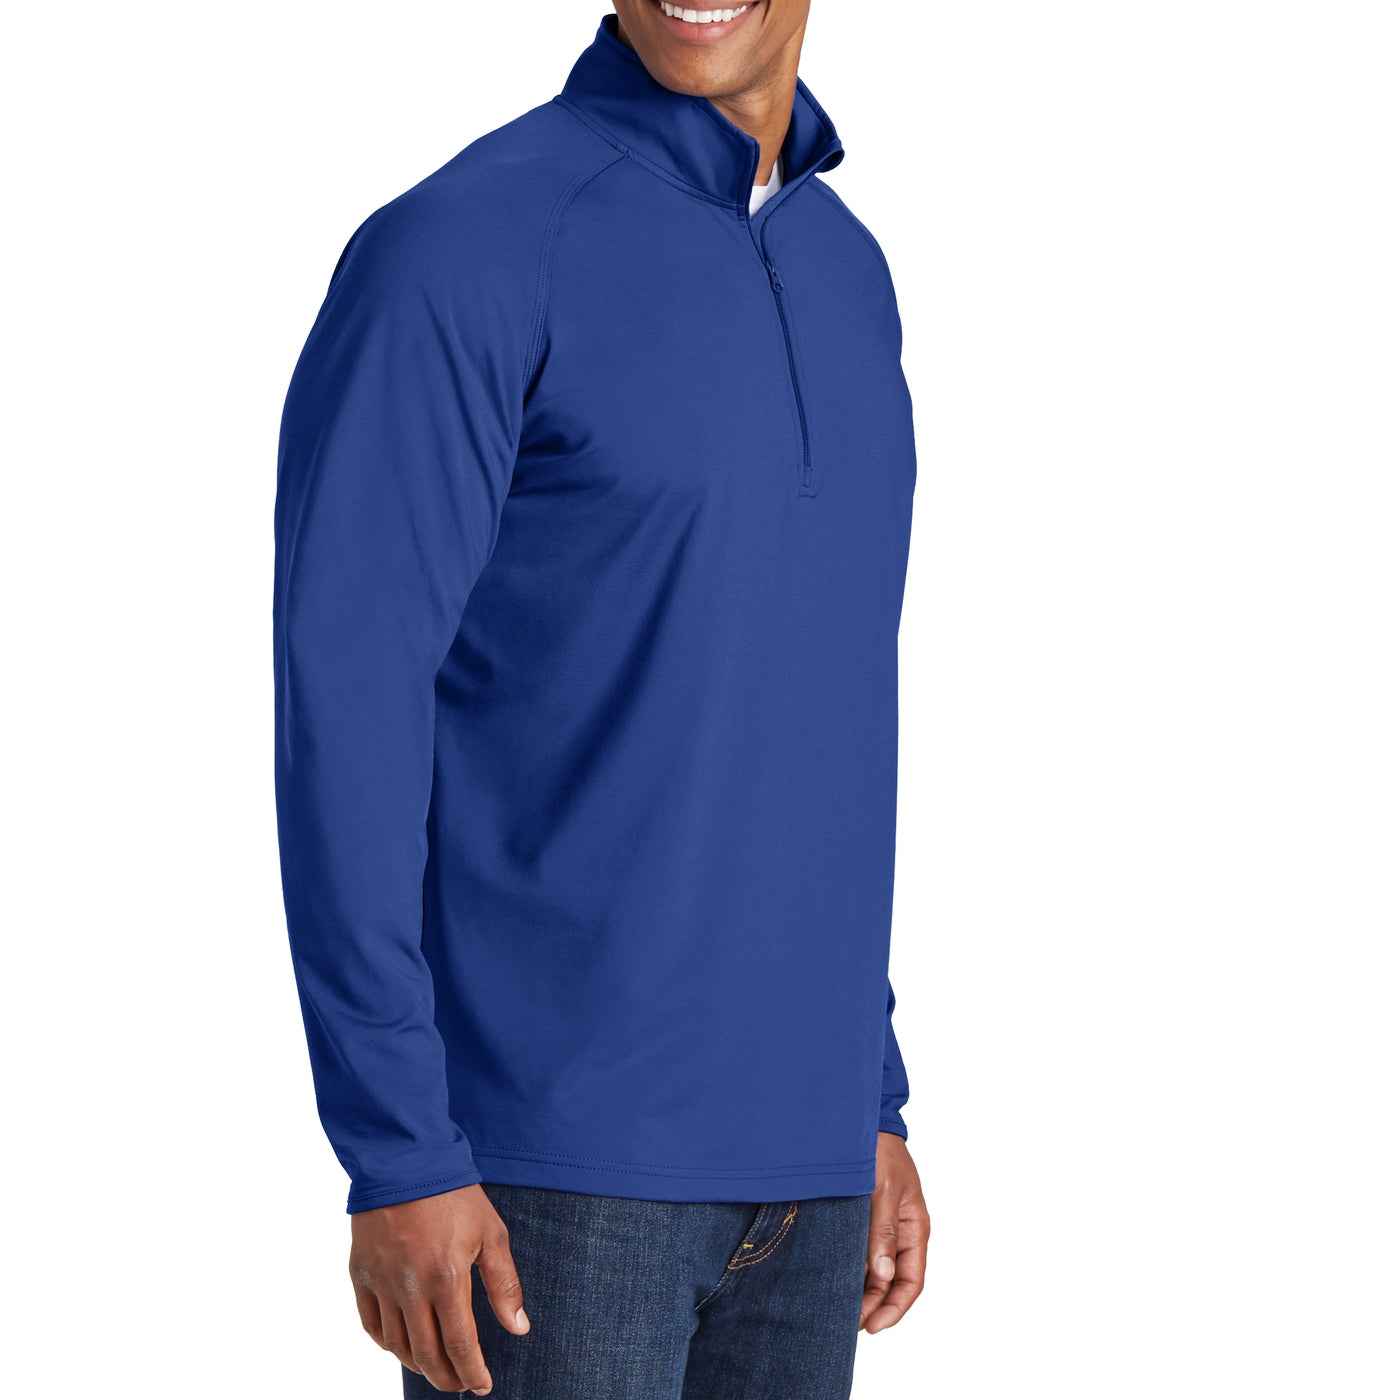 Men's Stretch 1/2 Zip Pullover - True Royal